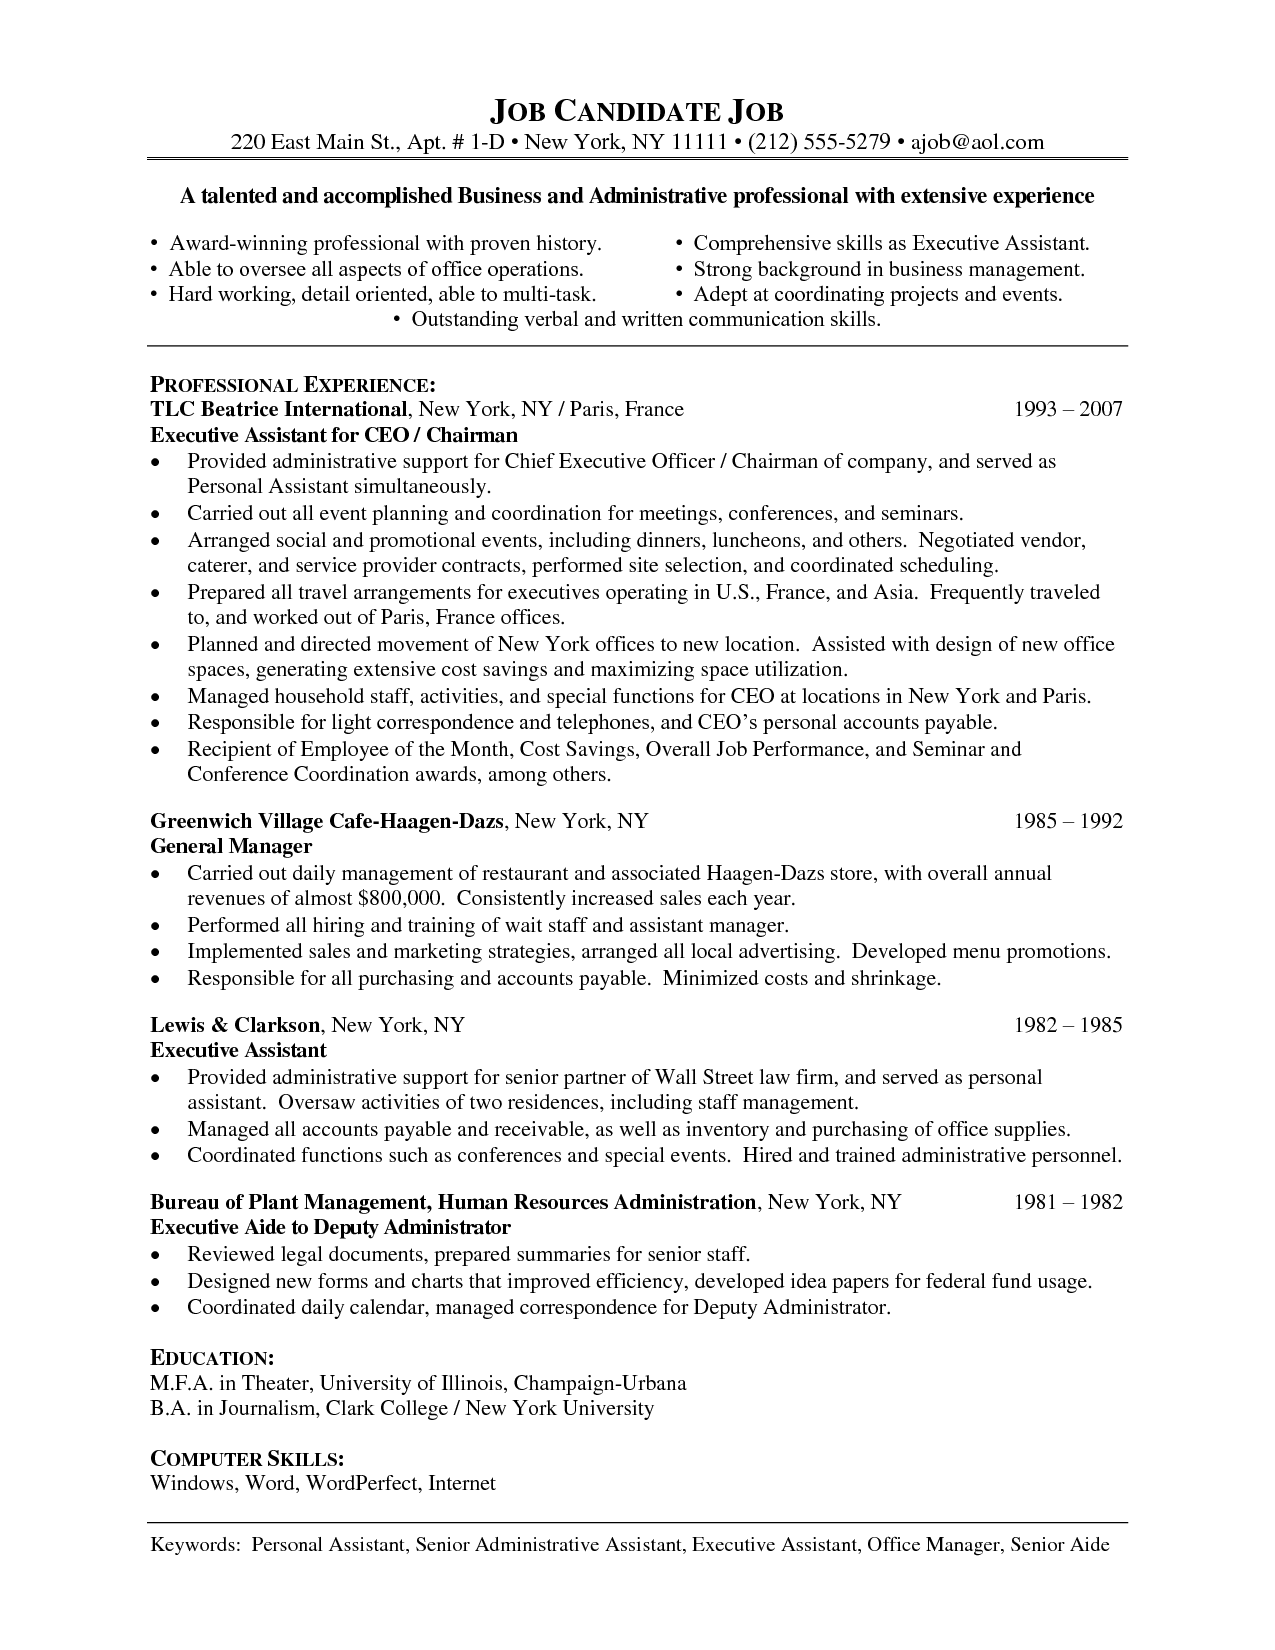 purchasing assistant resume functional resume template for administrative assistant word s - Office Assistant Resume Objective